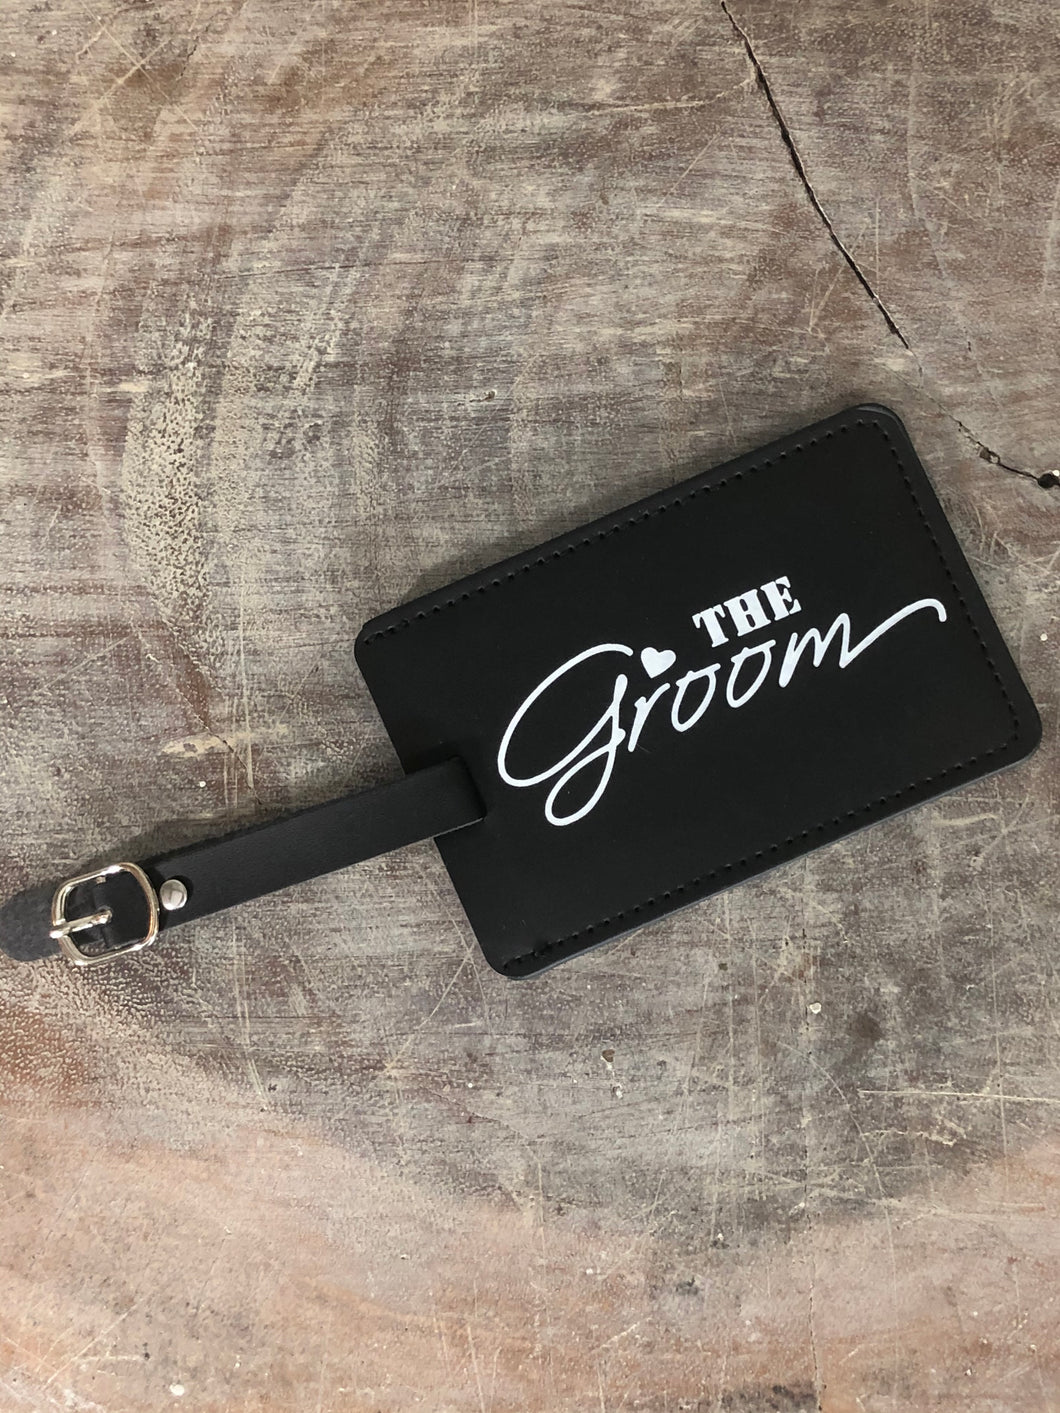 The Groom Luggage Tag